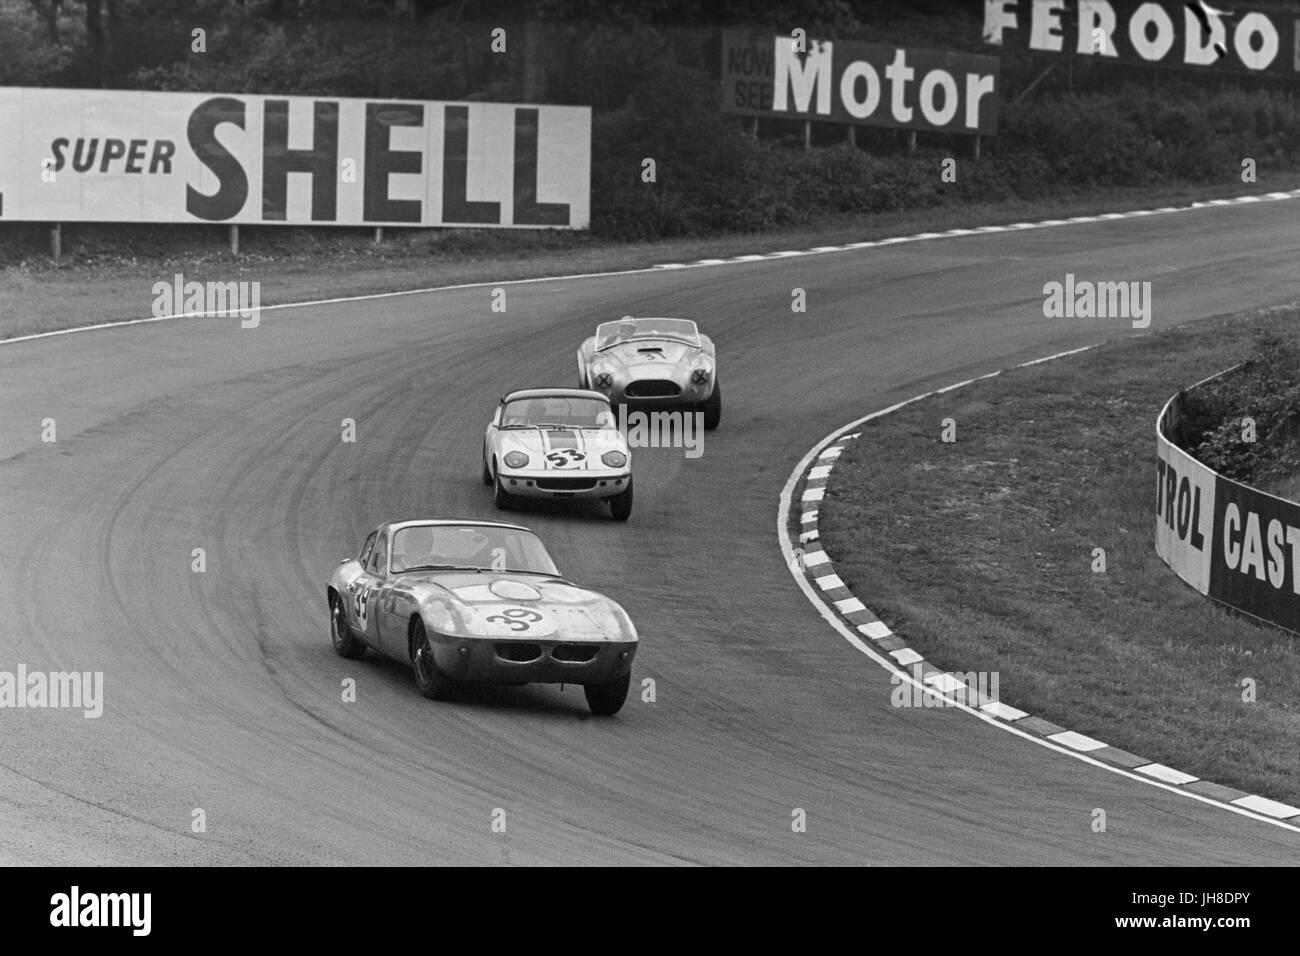 Racing at Brands Hatch in 1964. Gordon Spice in a Morgan Plus 4 SLR, leads Clive Hunt in a Lotus Elan, followed - Stock Image